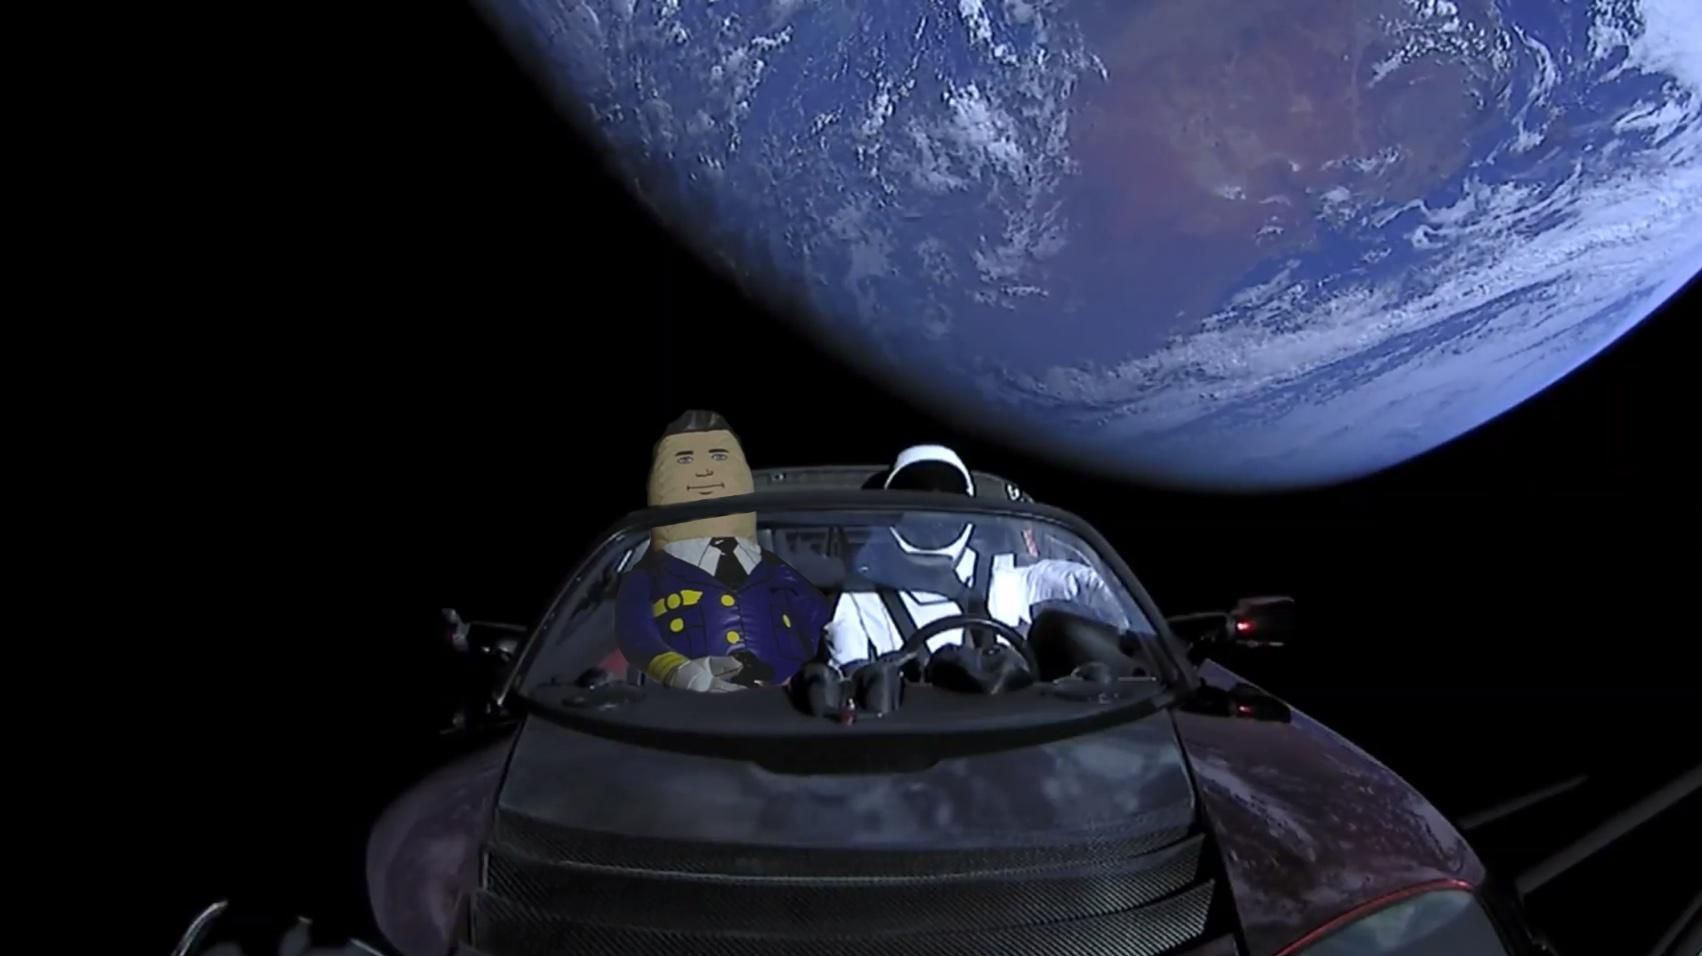 SpaceX confirm successsful autopilot deployment